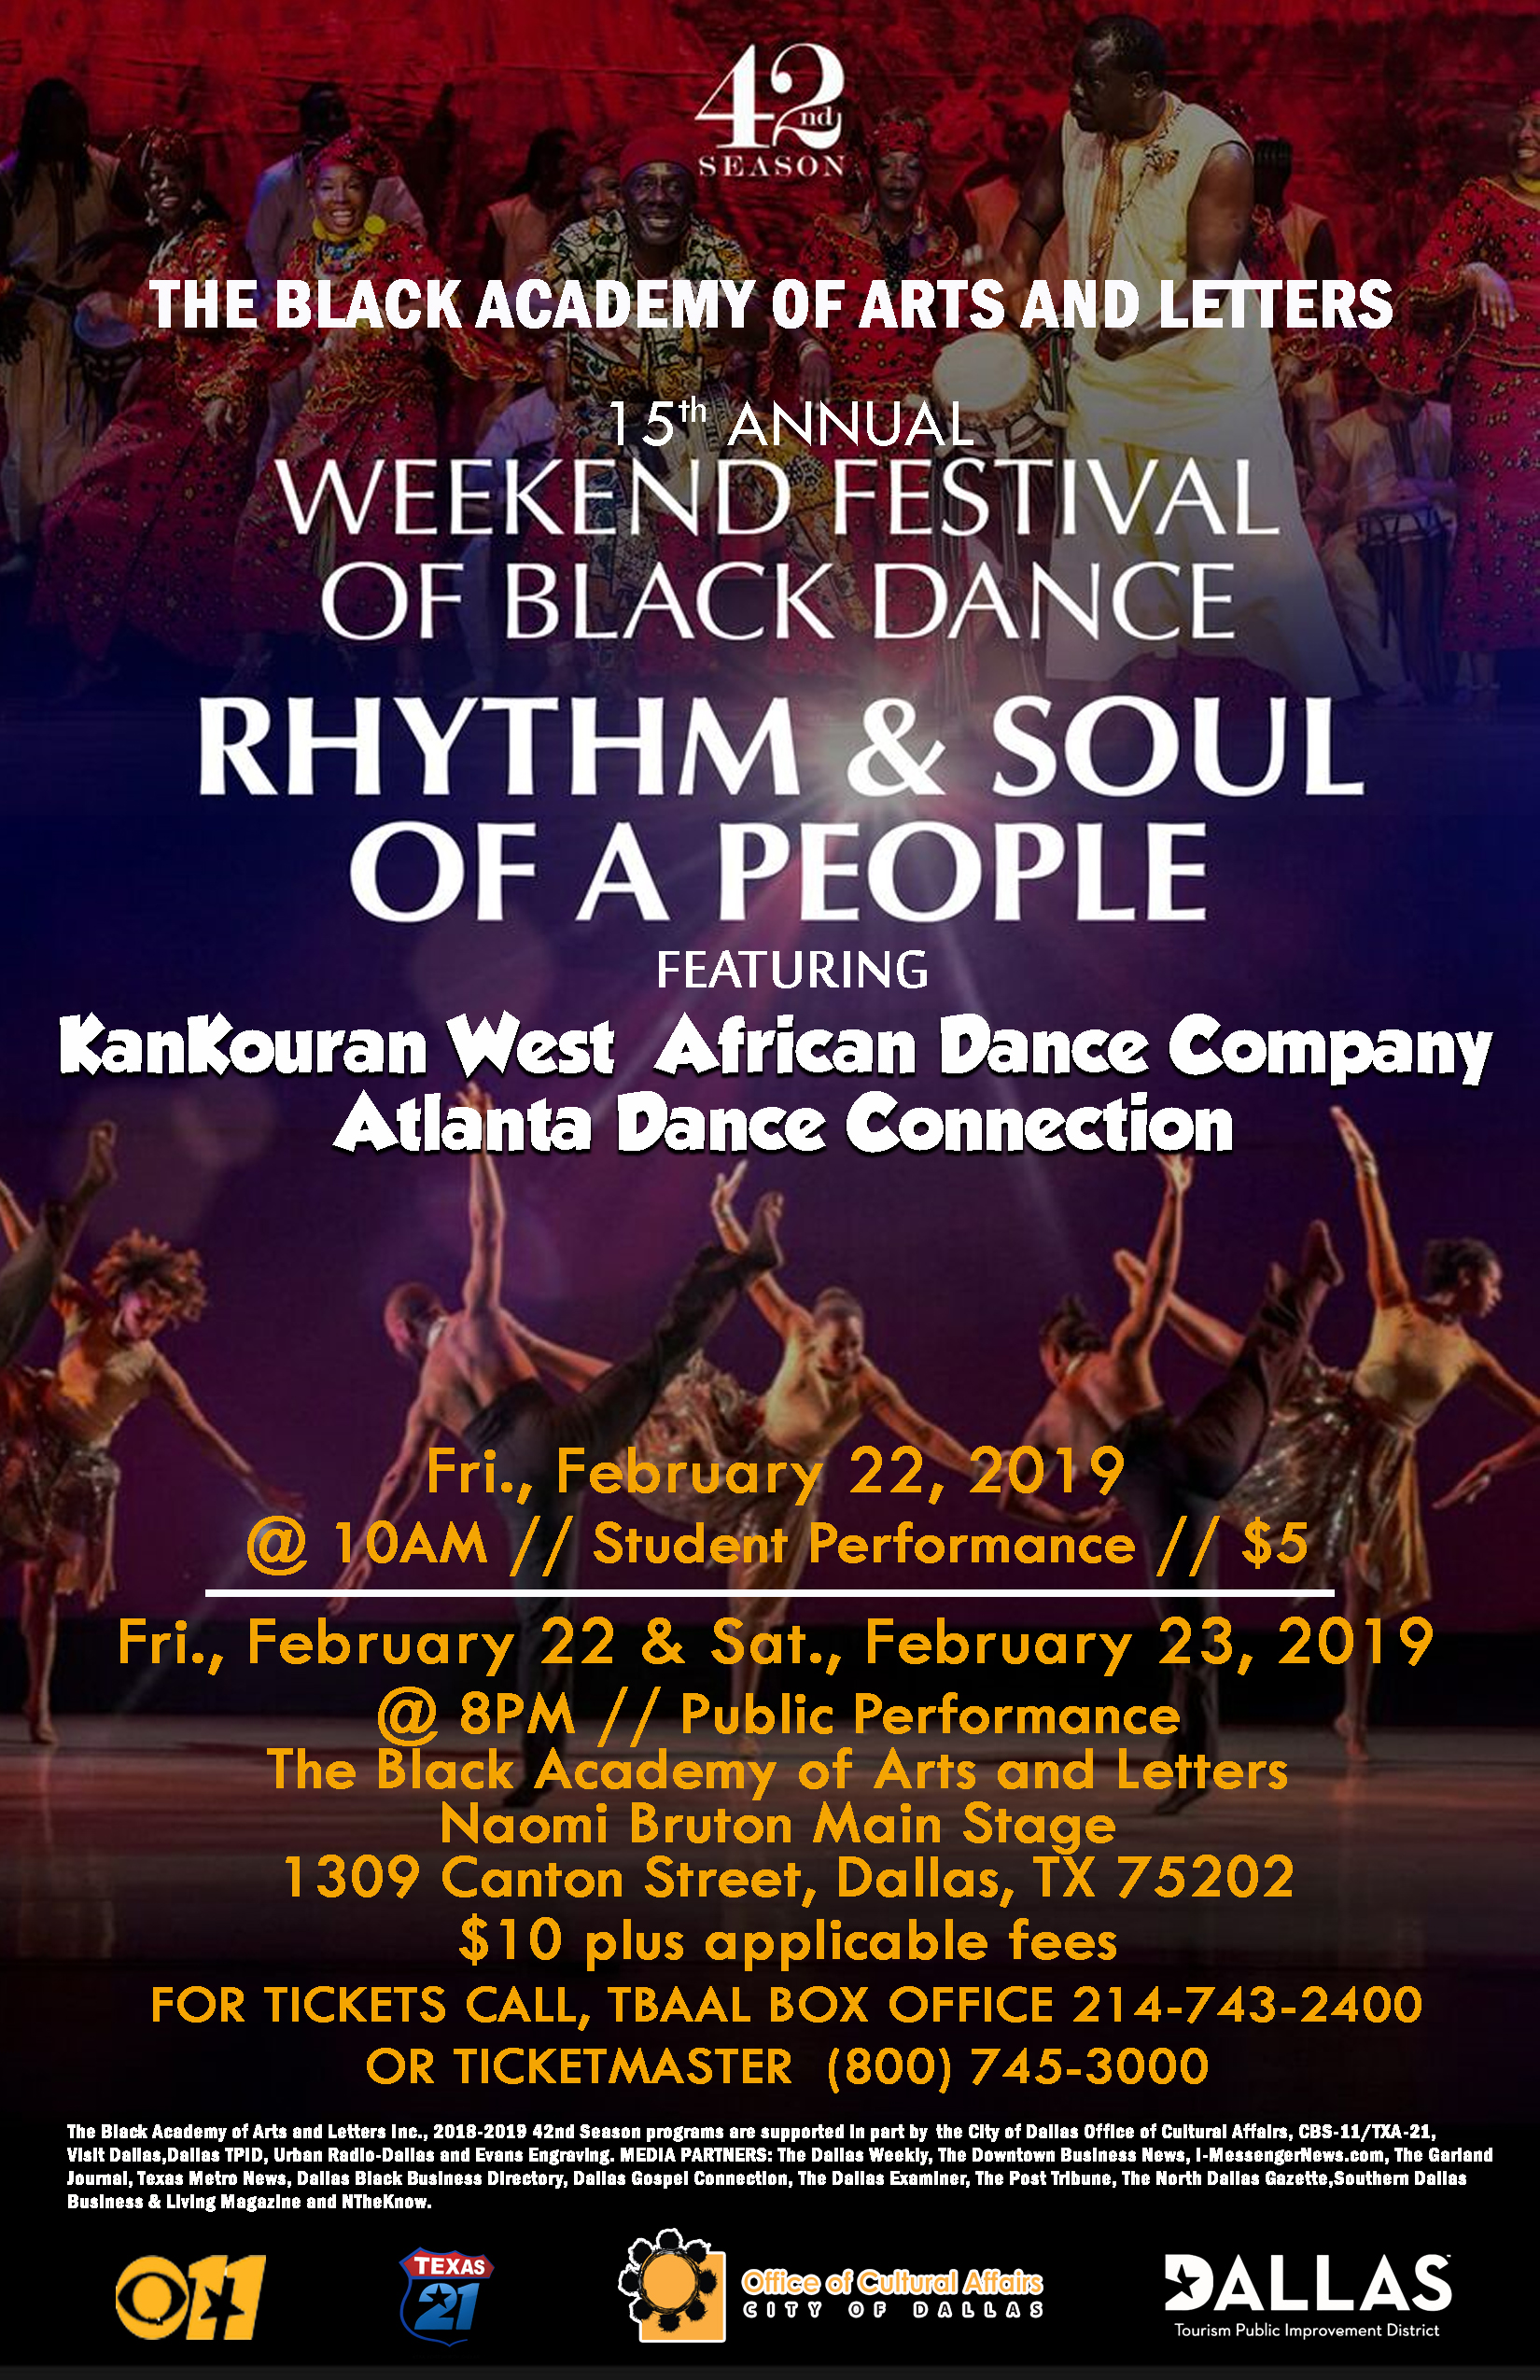 15TH ANNUAL WEEKEND FESTIVAL OF BLACK DANCE: FEBRUARY 22, 2019